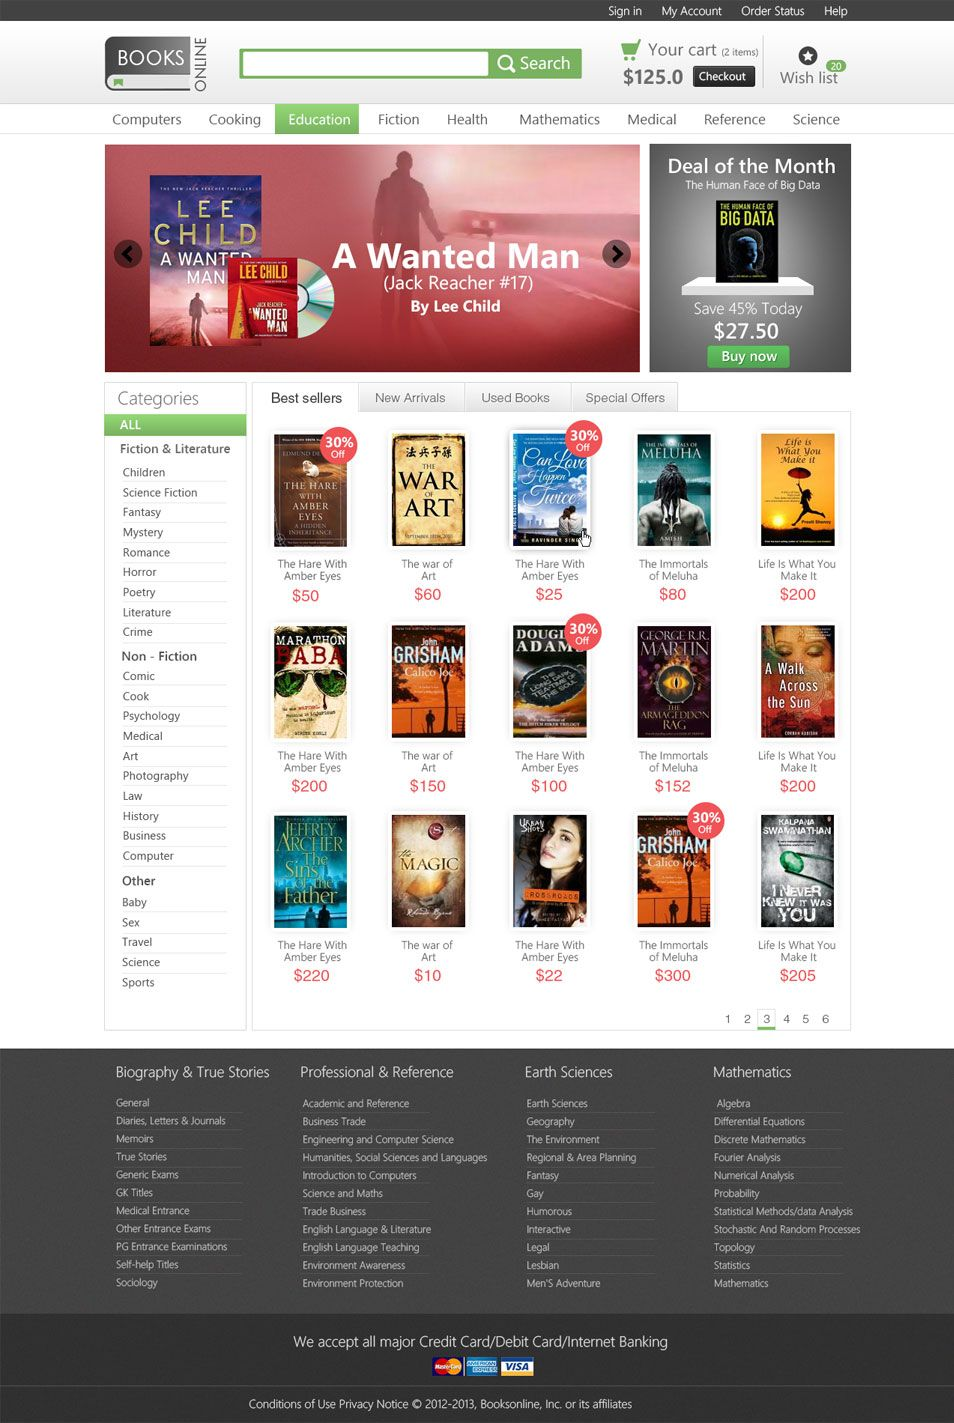 Free bookstore website template psd. #free #psd #webdesign #layout ...